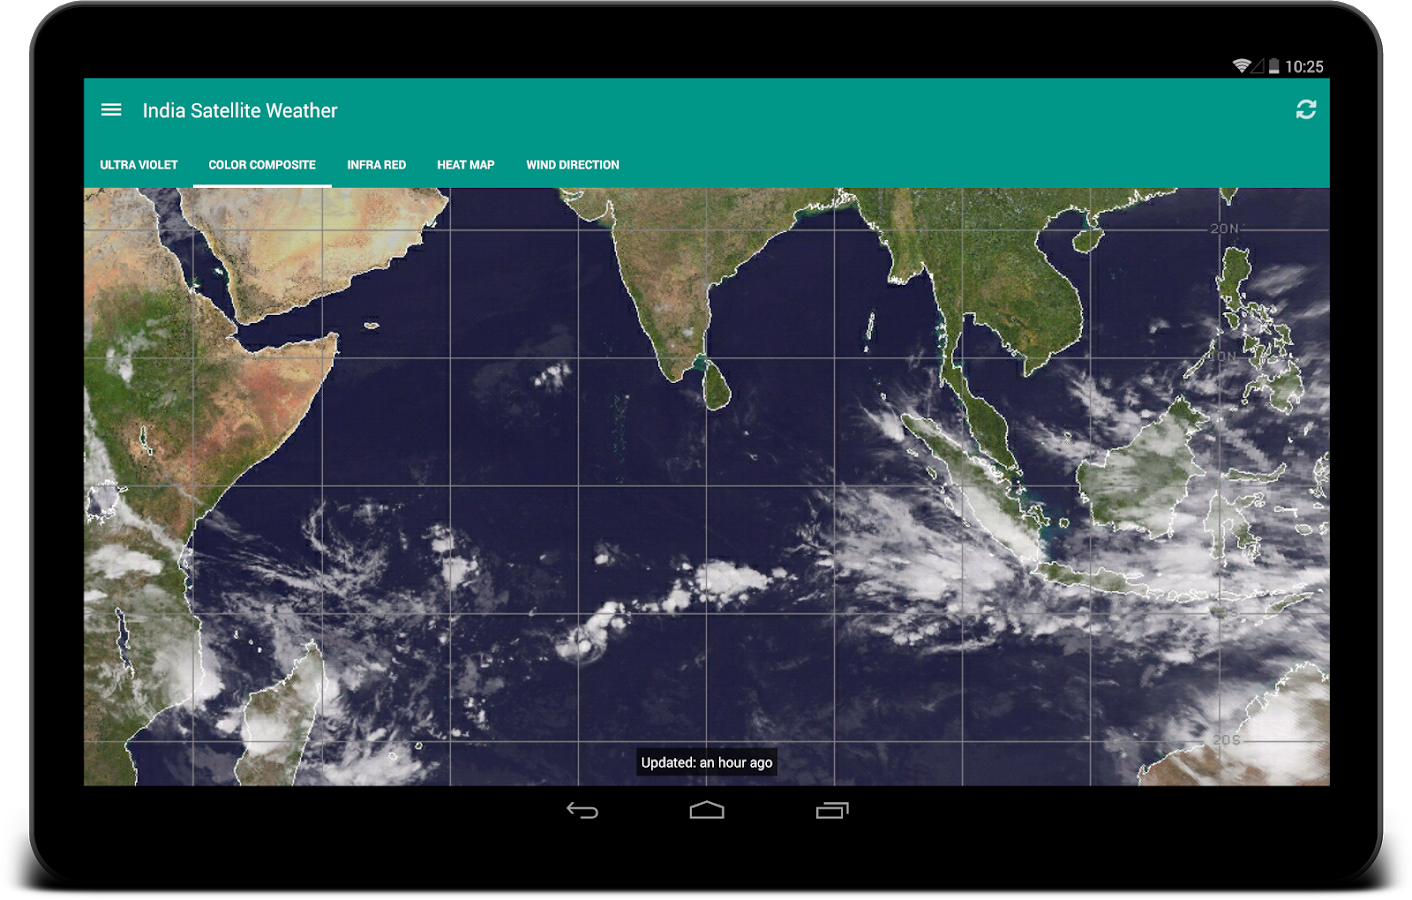 India Satellite Weather Android Apps On Google Play - Us radar weather map online